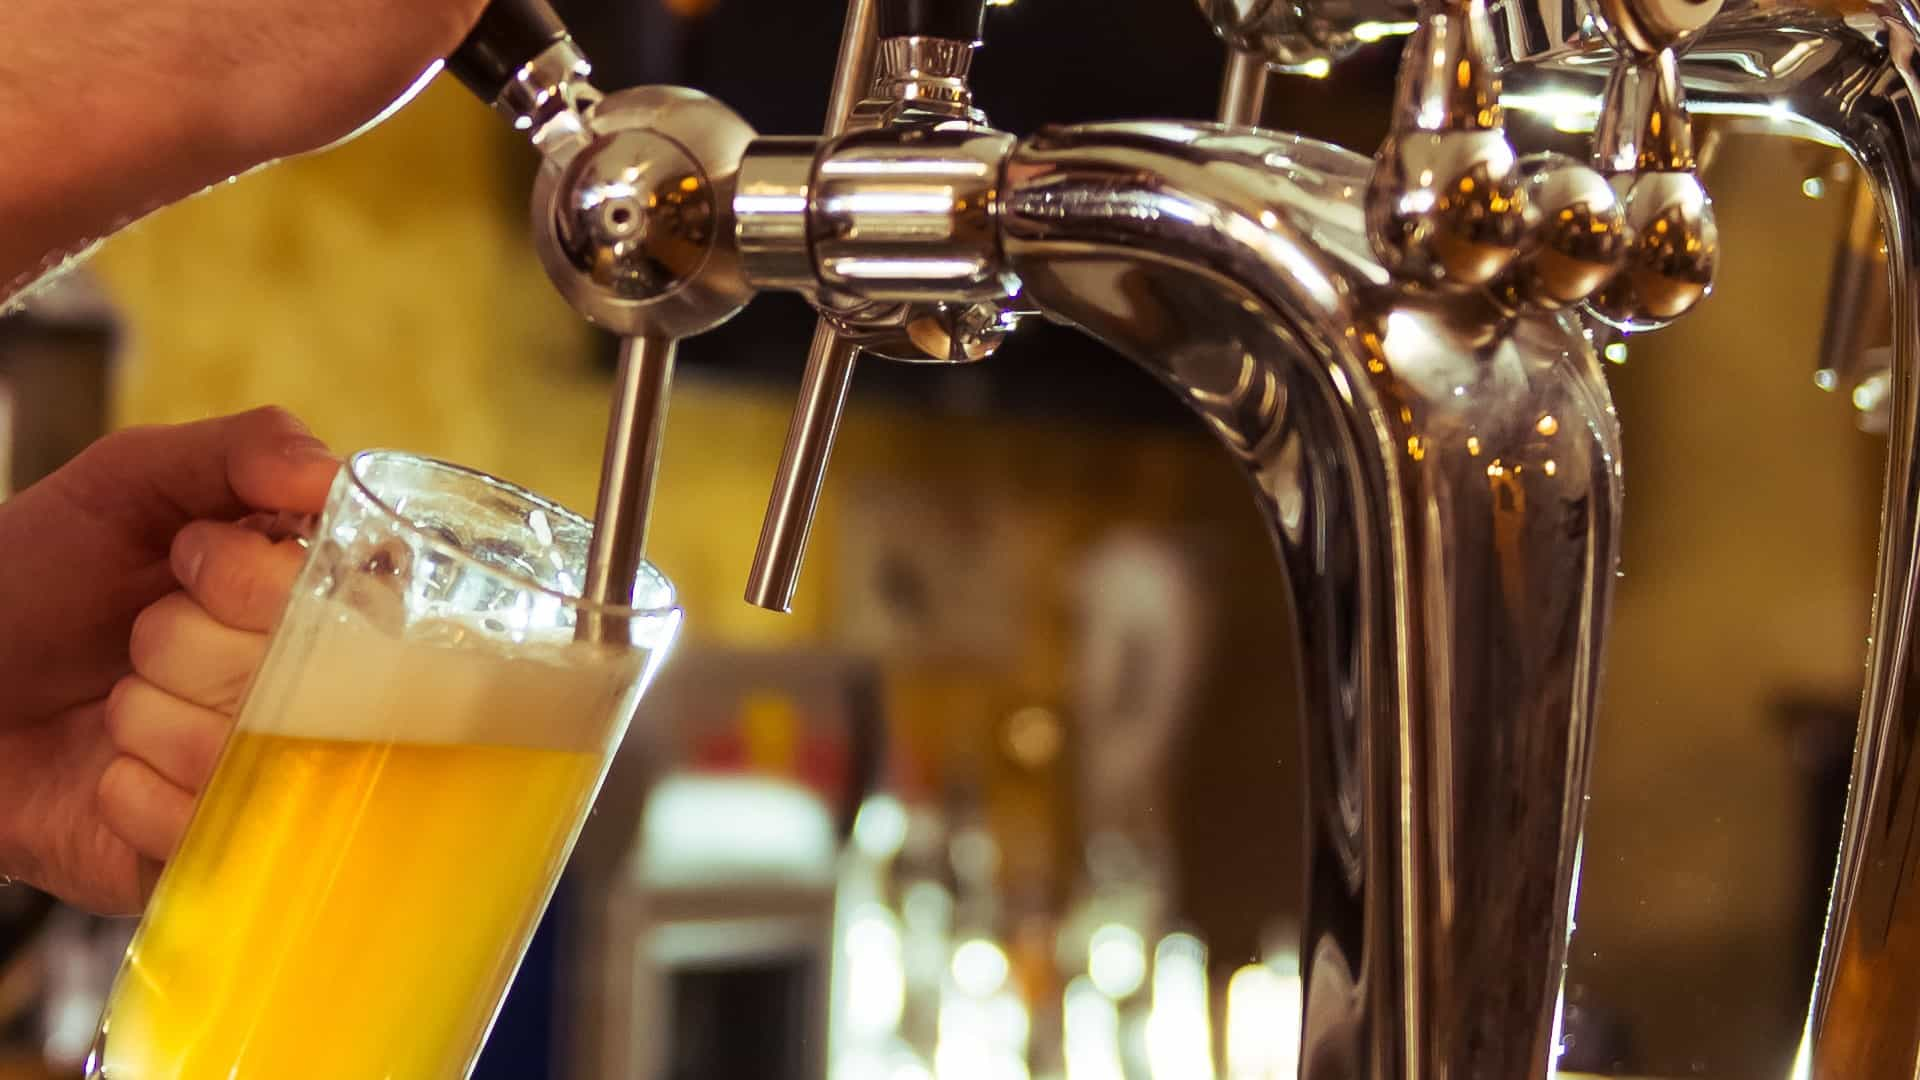 Best Beer Dispenser 2020: Shopping Guide & Review